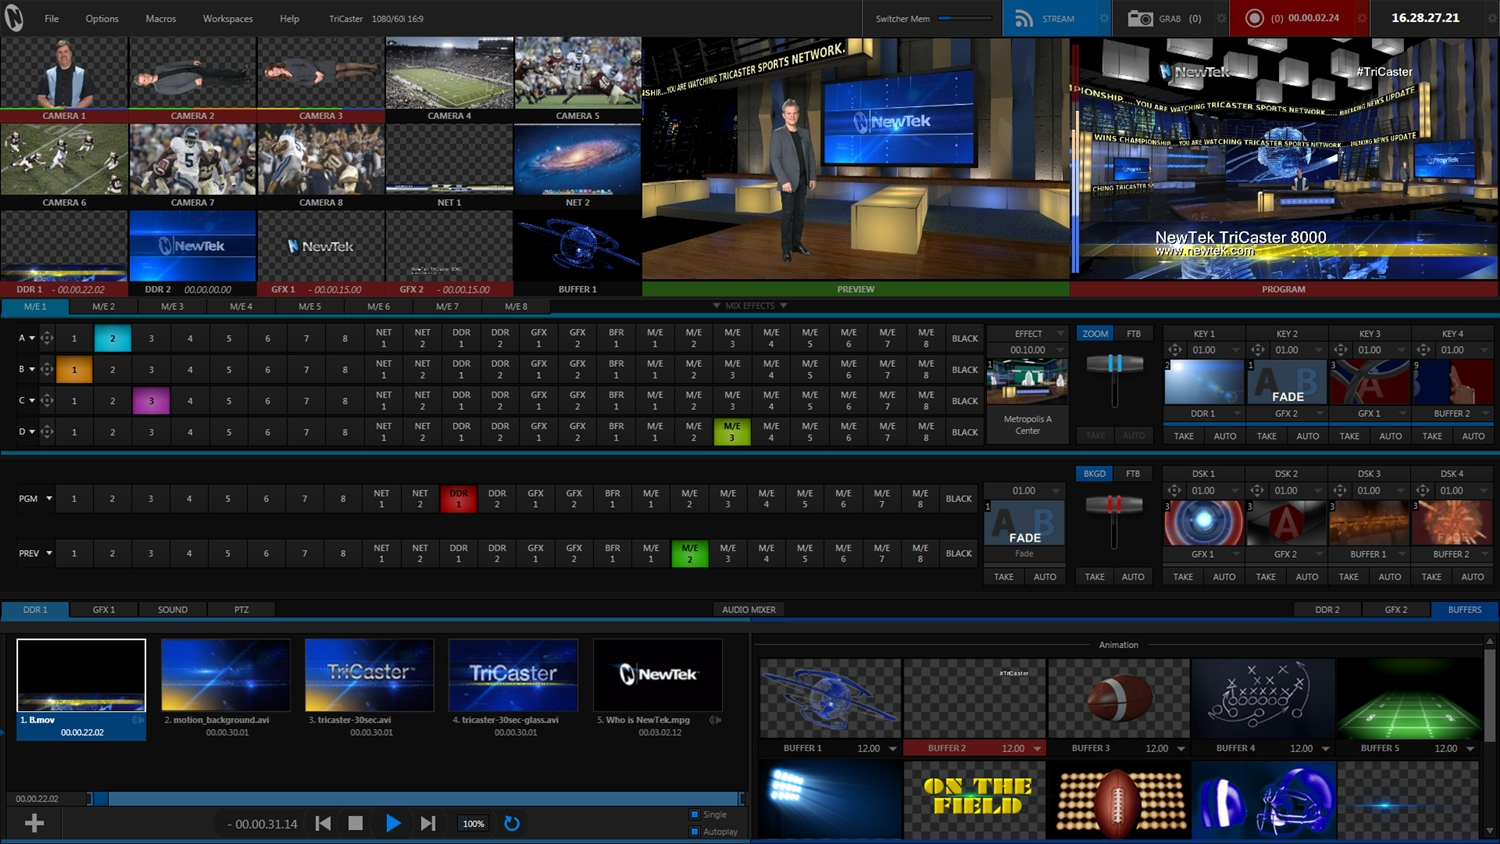 3d Photo Frame Live Wallpaper Newtek Tricaster 8000 Without Control Surface